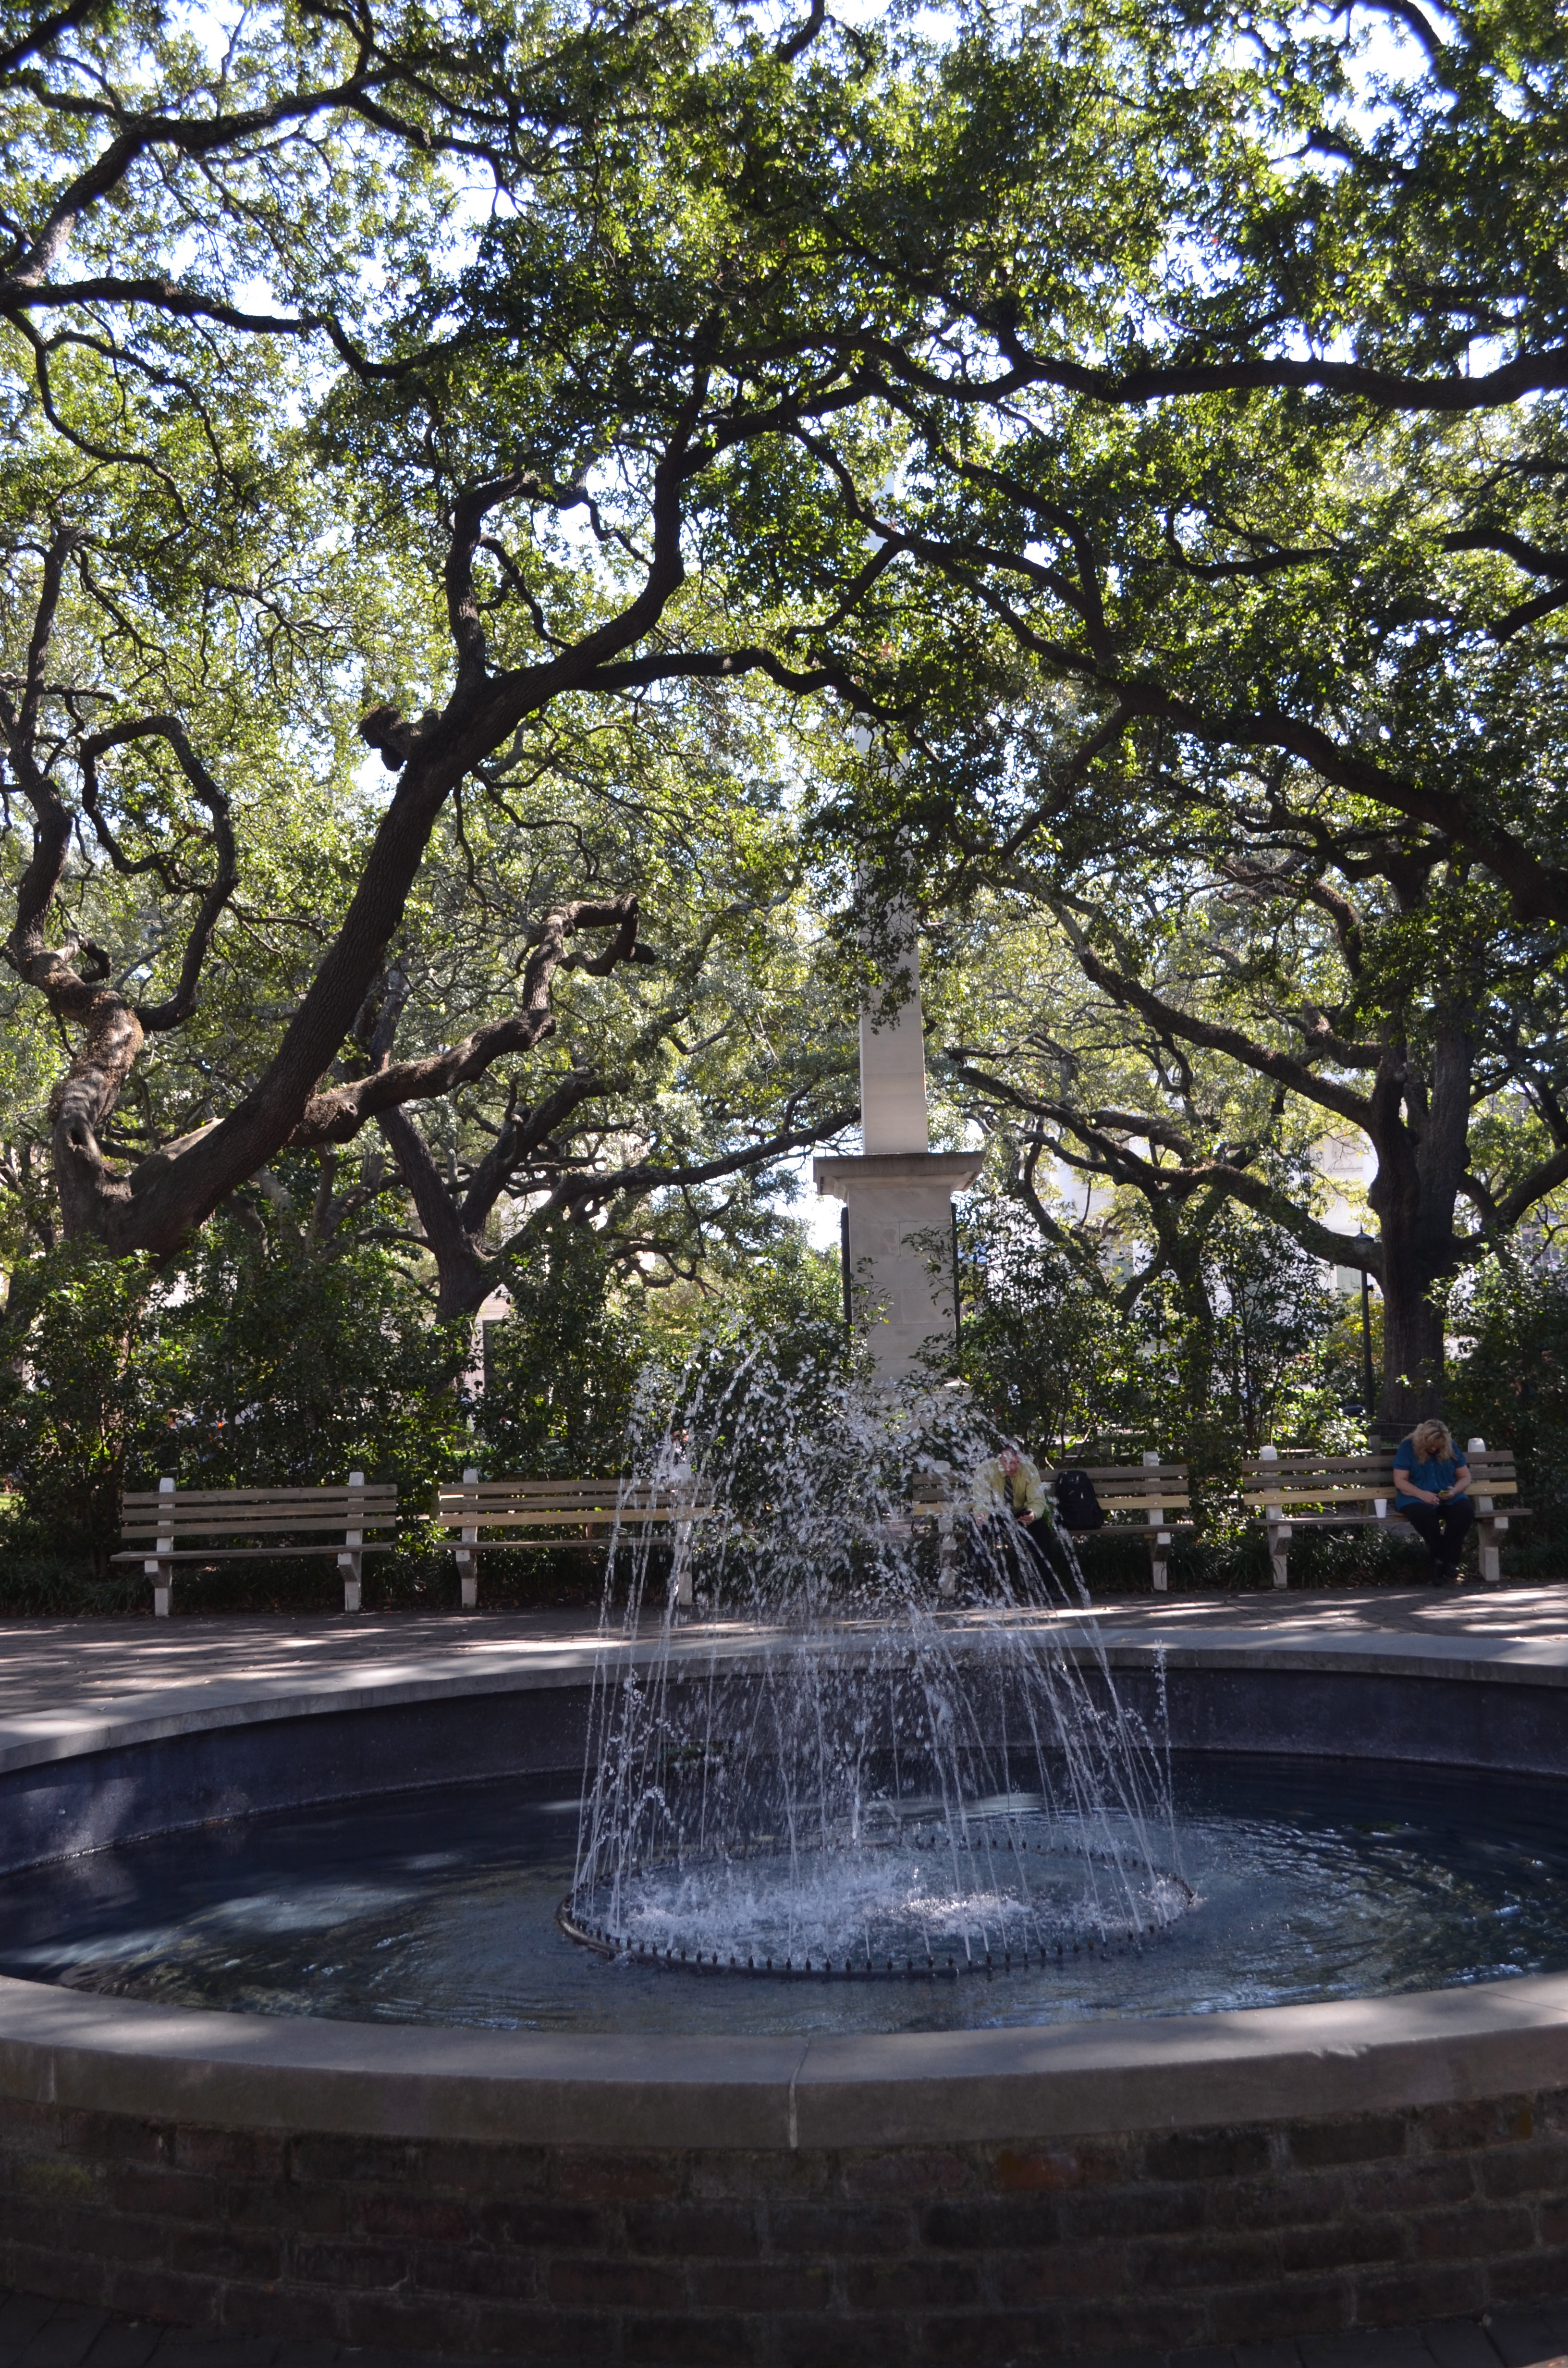 girl meets city savannah southern bon vivant savannah a town wrapped in the mystique of spanish moss laden oaks southern belle lore and historic homes meeting head on with a modern foodie mecca